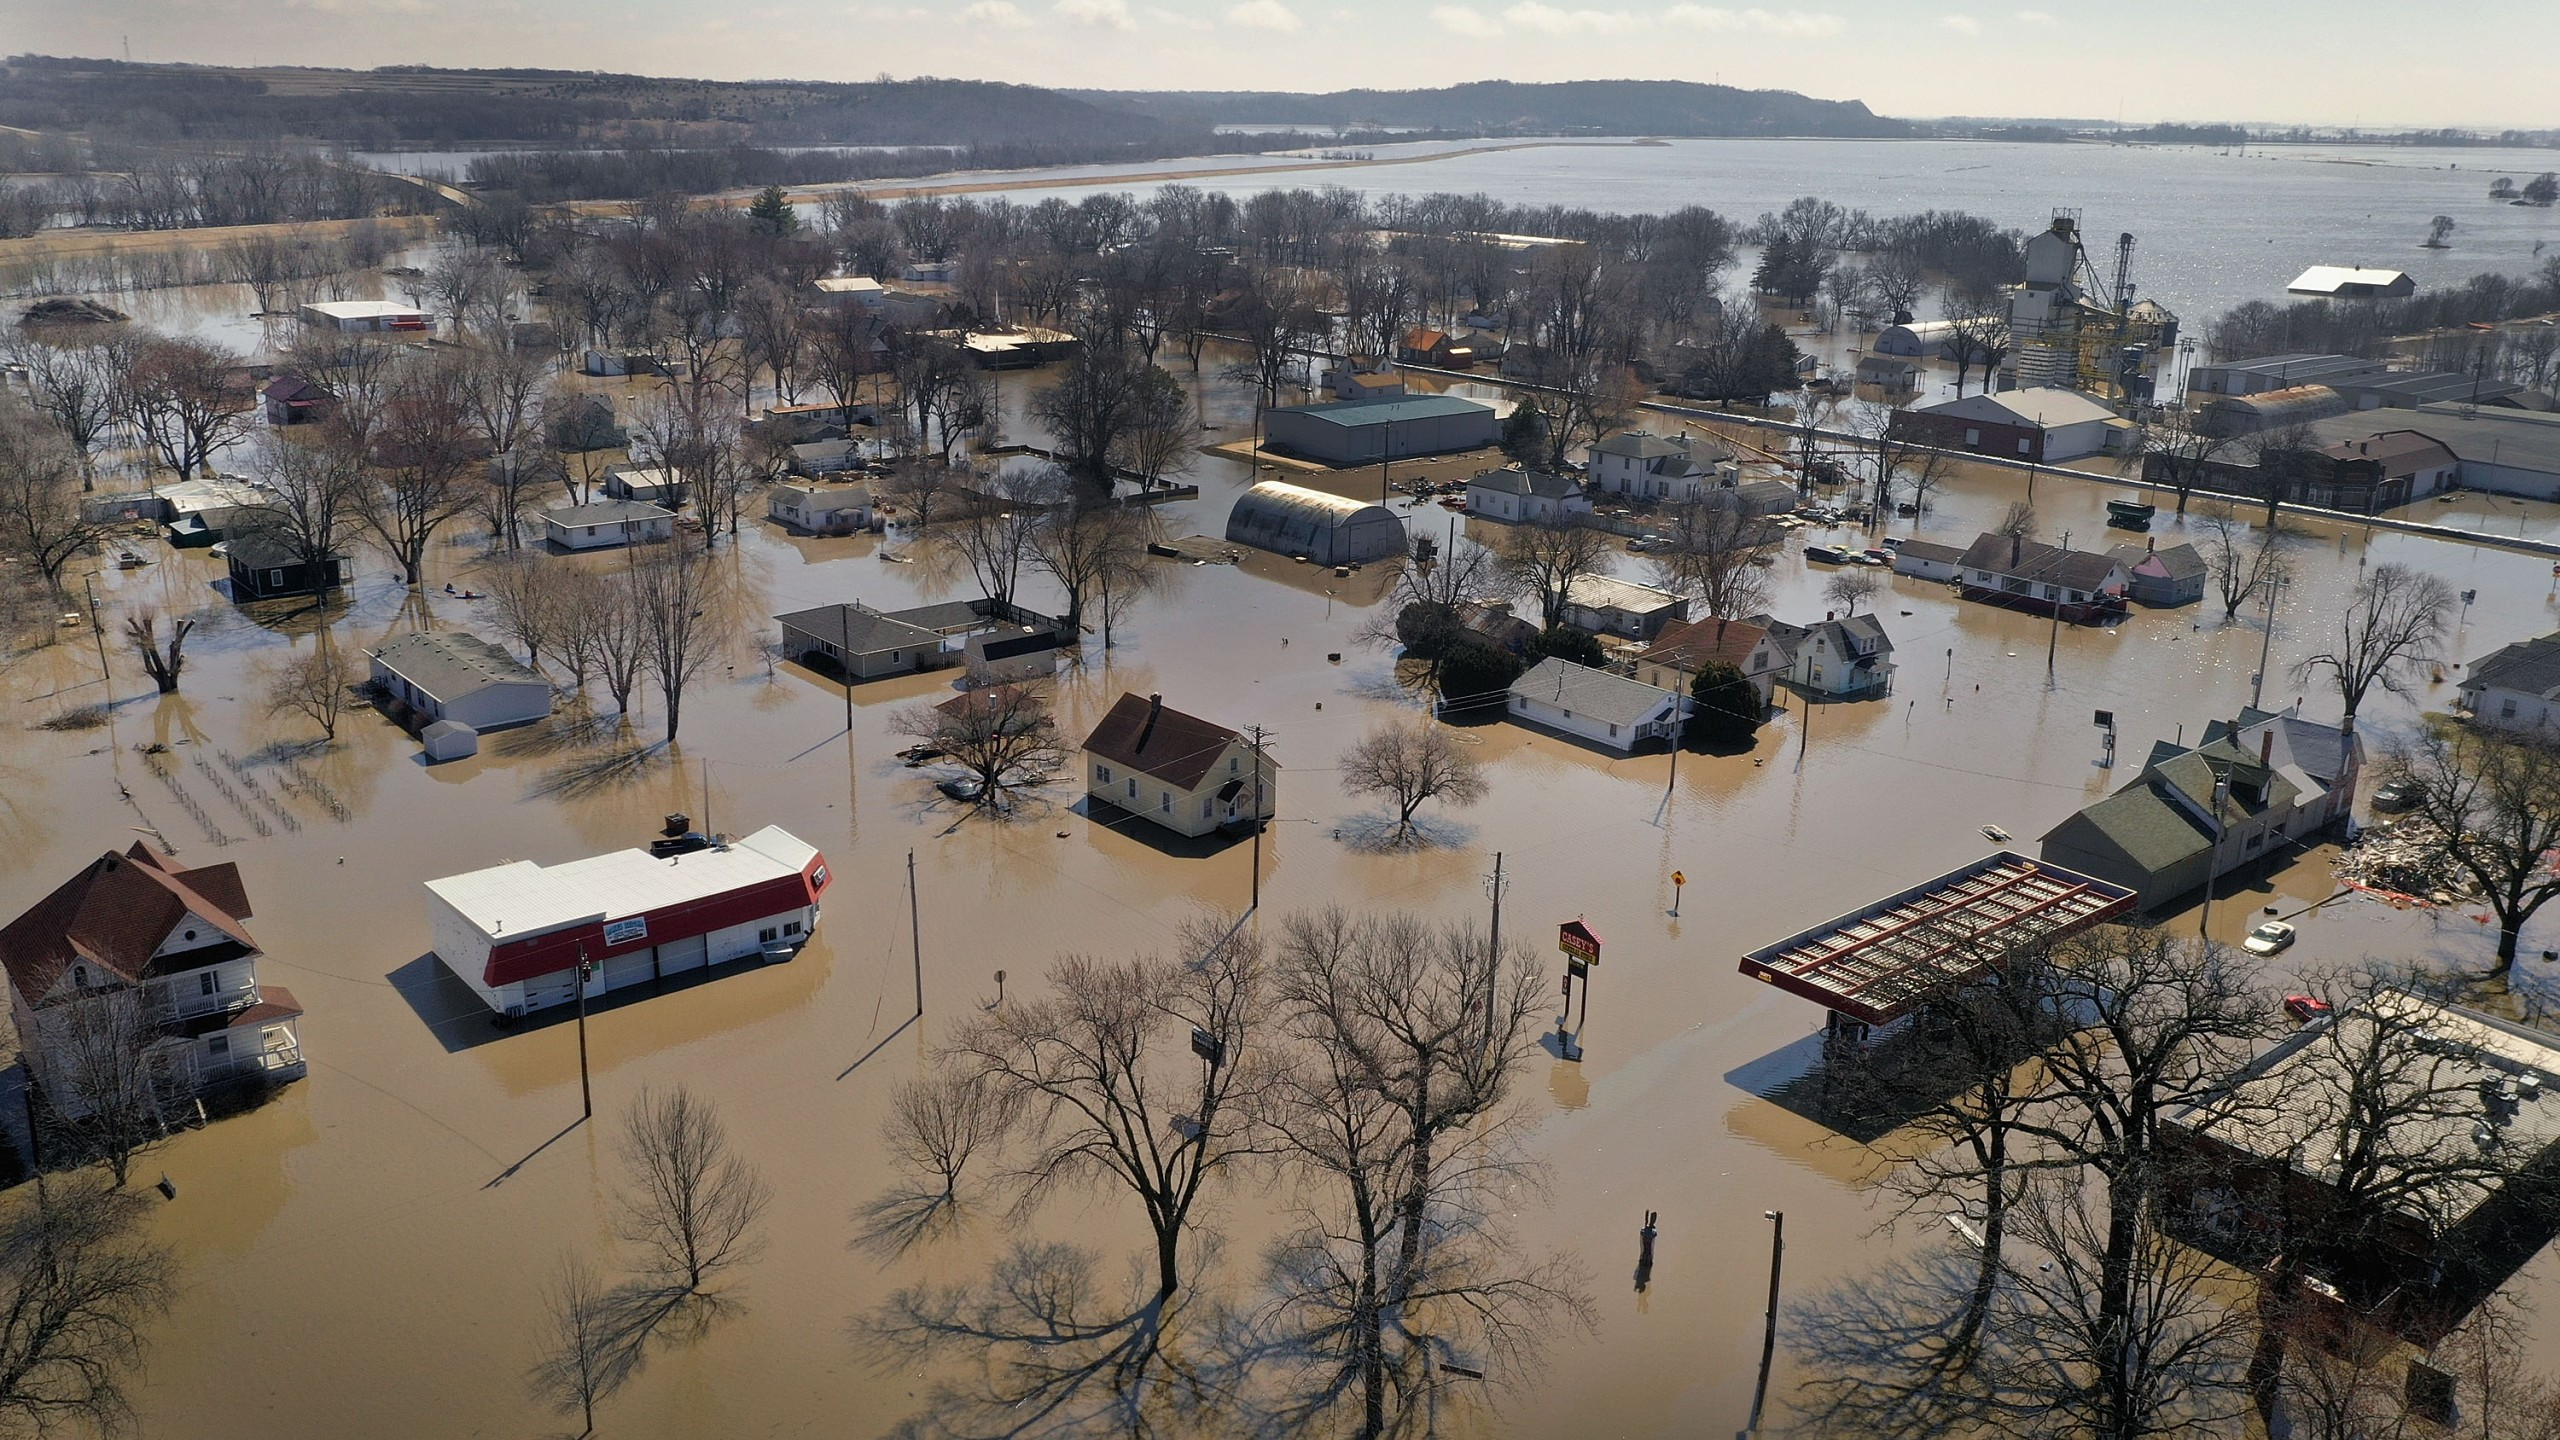 Homes and businesses are surrounded by floodwater on March 20, 2019 in Hamburg, Iowa. (Credit: Scott Olson/Getty Images)